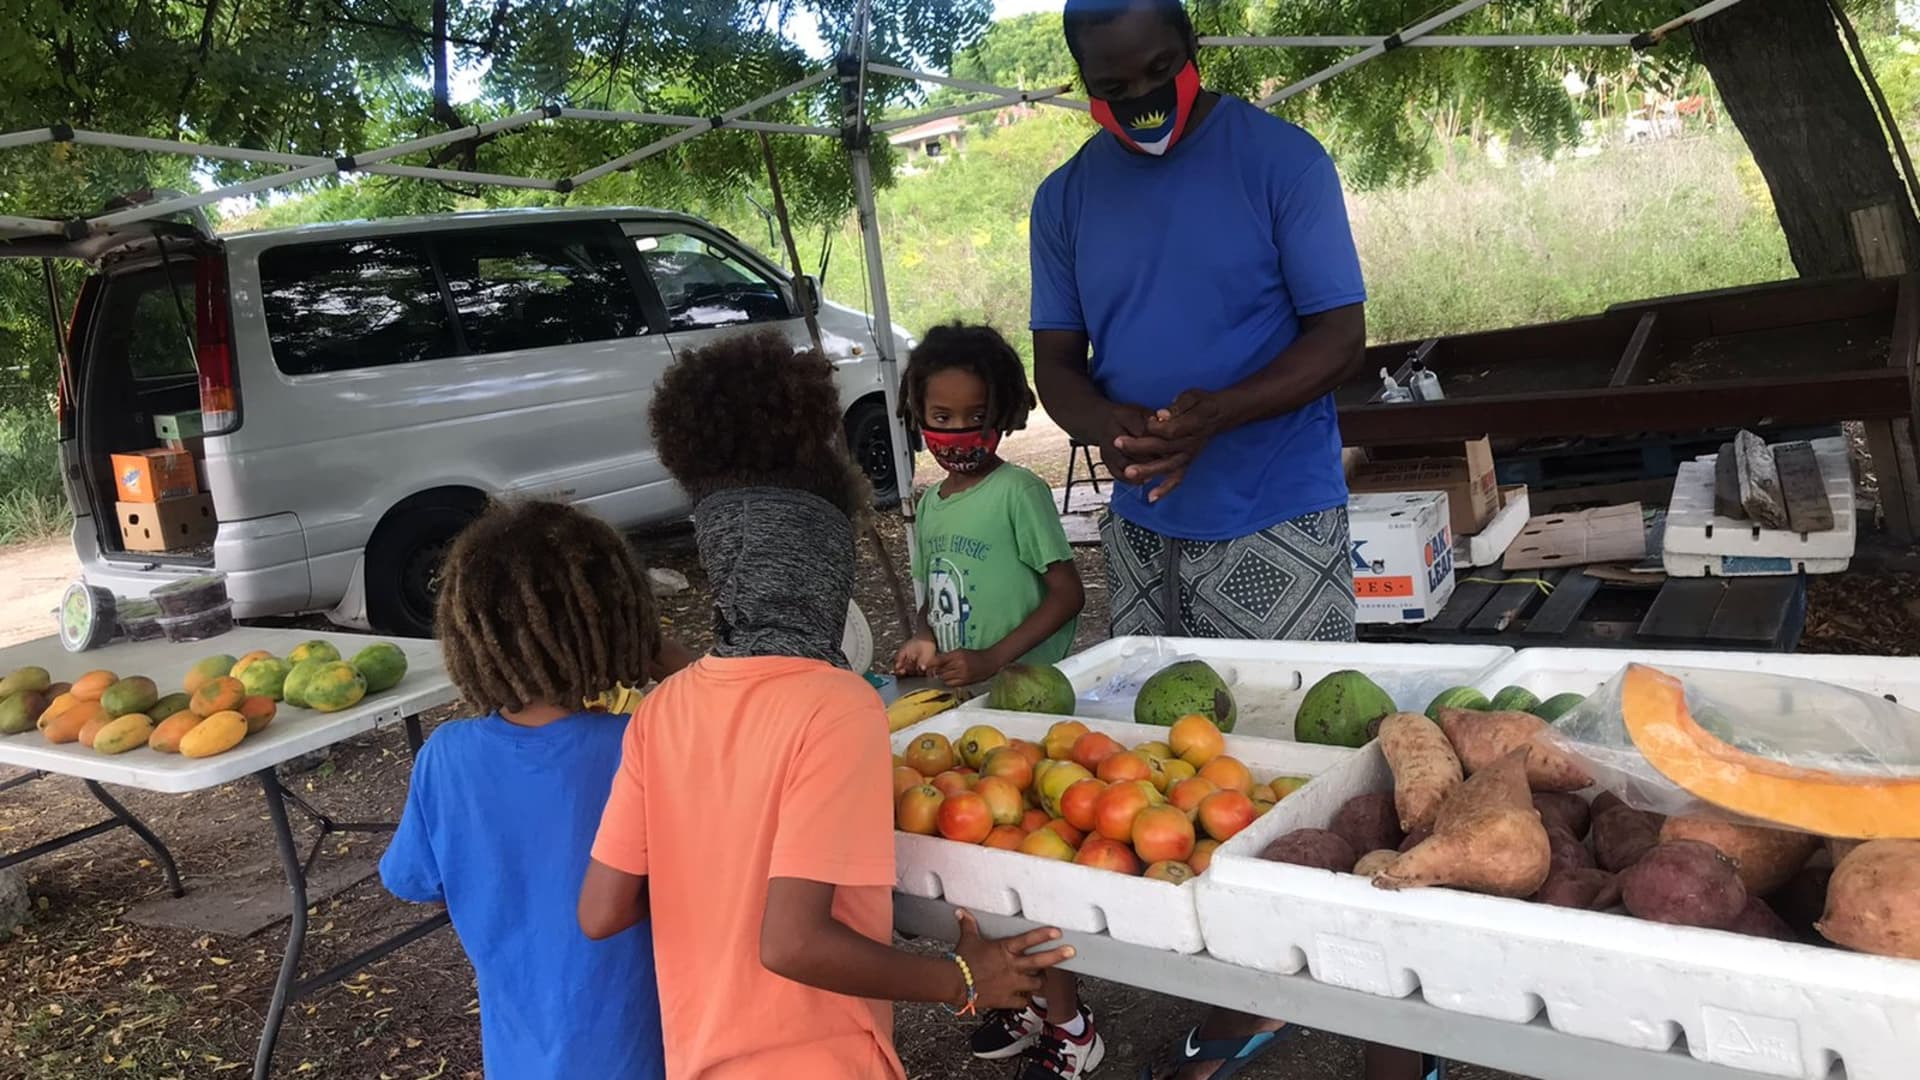 Mr. Mervin Lake keeps our family stocked with fresh fruit and vegetables.